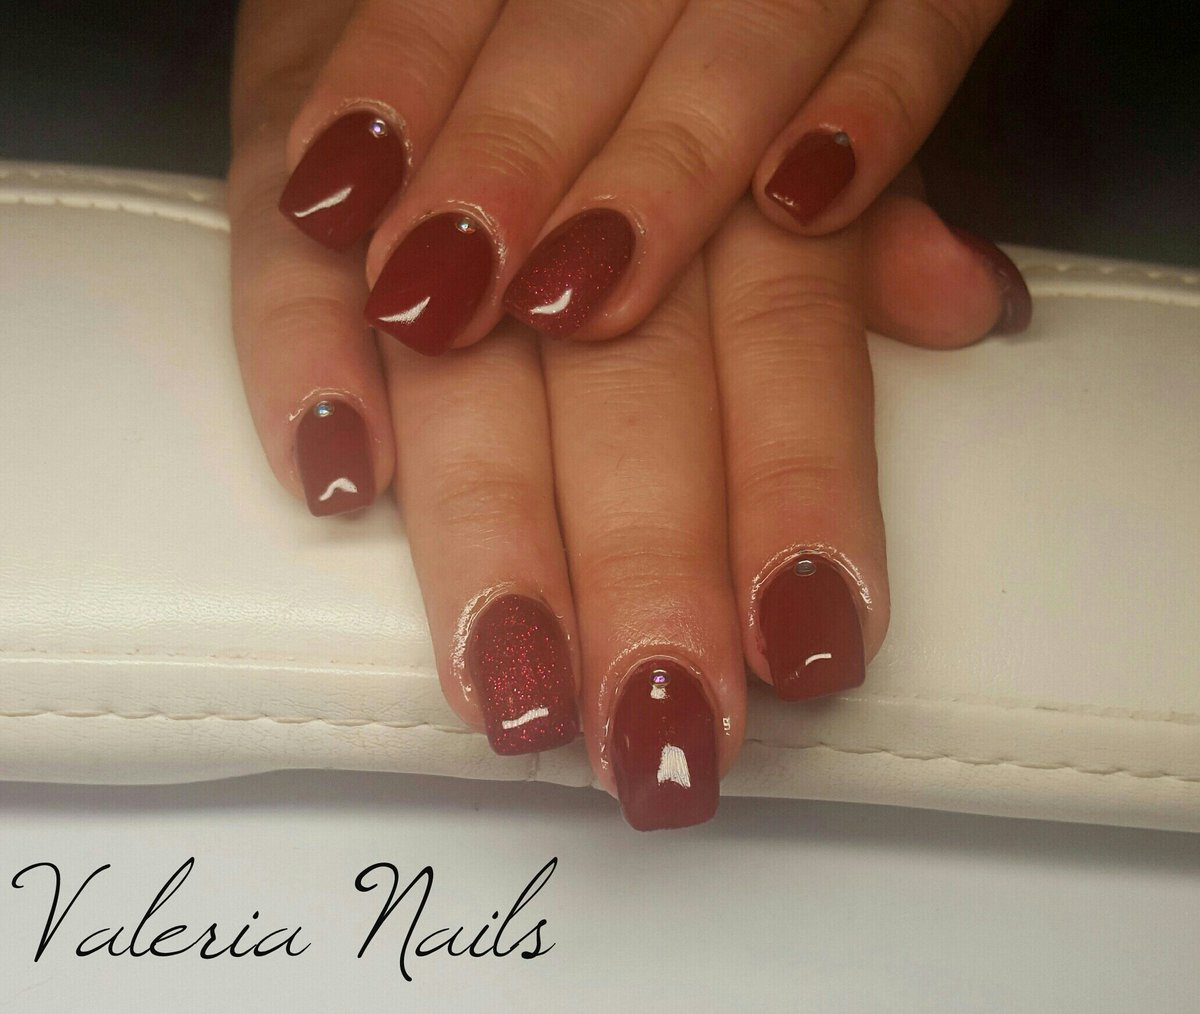 Valeria On Twitter Ricostruzione Unghie Nails Gel Bordeaux